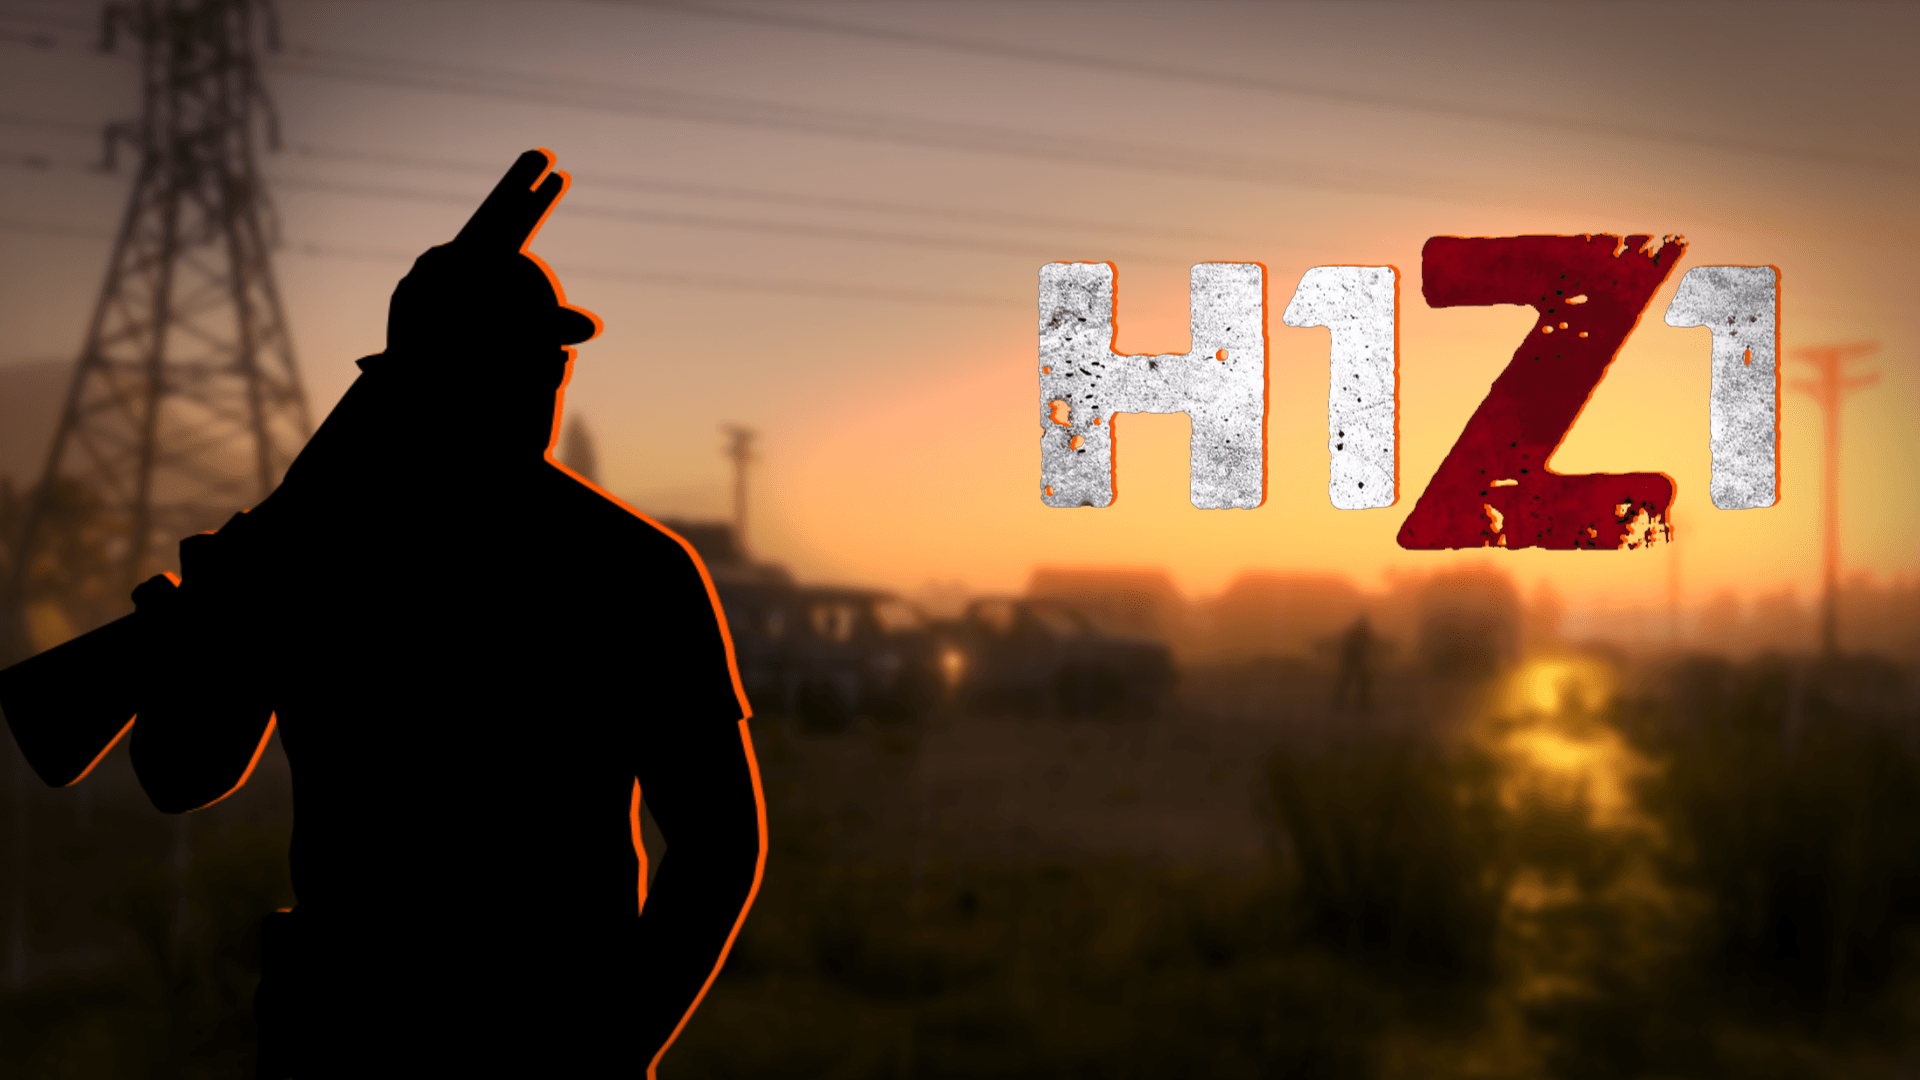 H1z1 Wallpapers Top Free H1z1 Backgrounds Wallpaperaccess